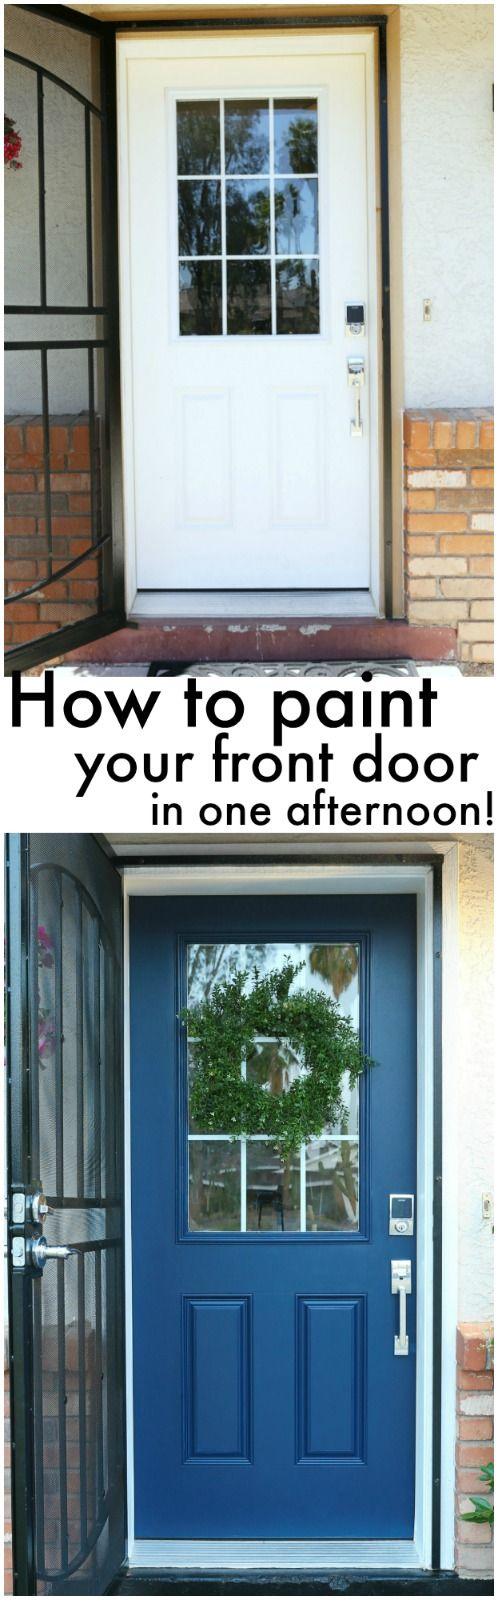 How to paint your front door with @scotchblue painter's tape! - www.classyclutter.net #preppaintpull